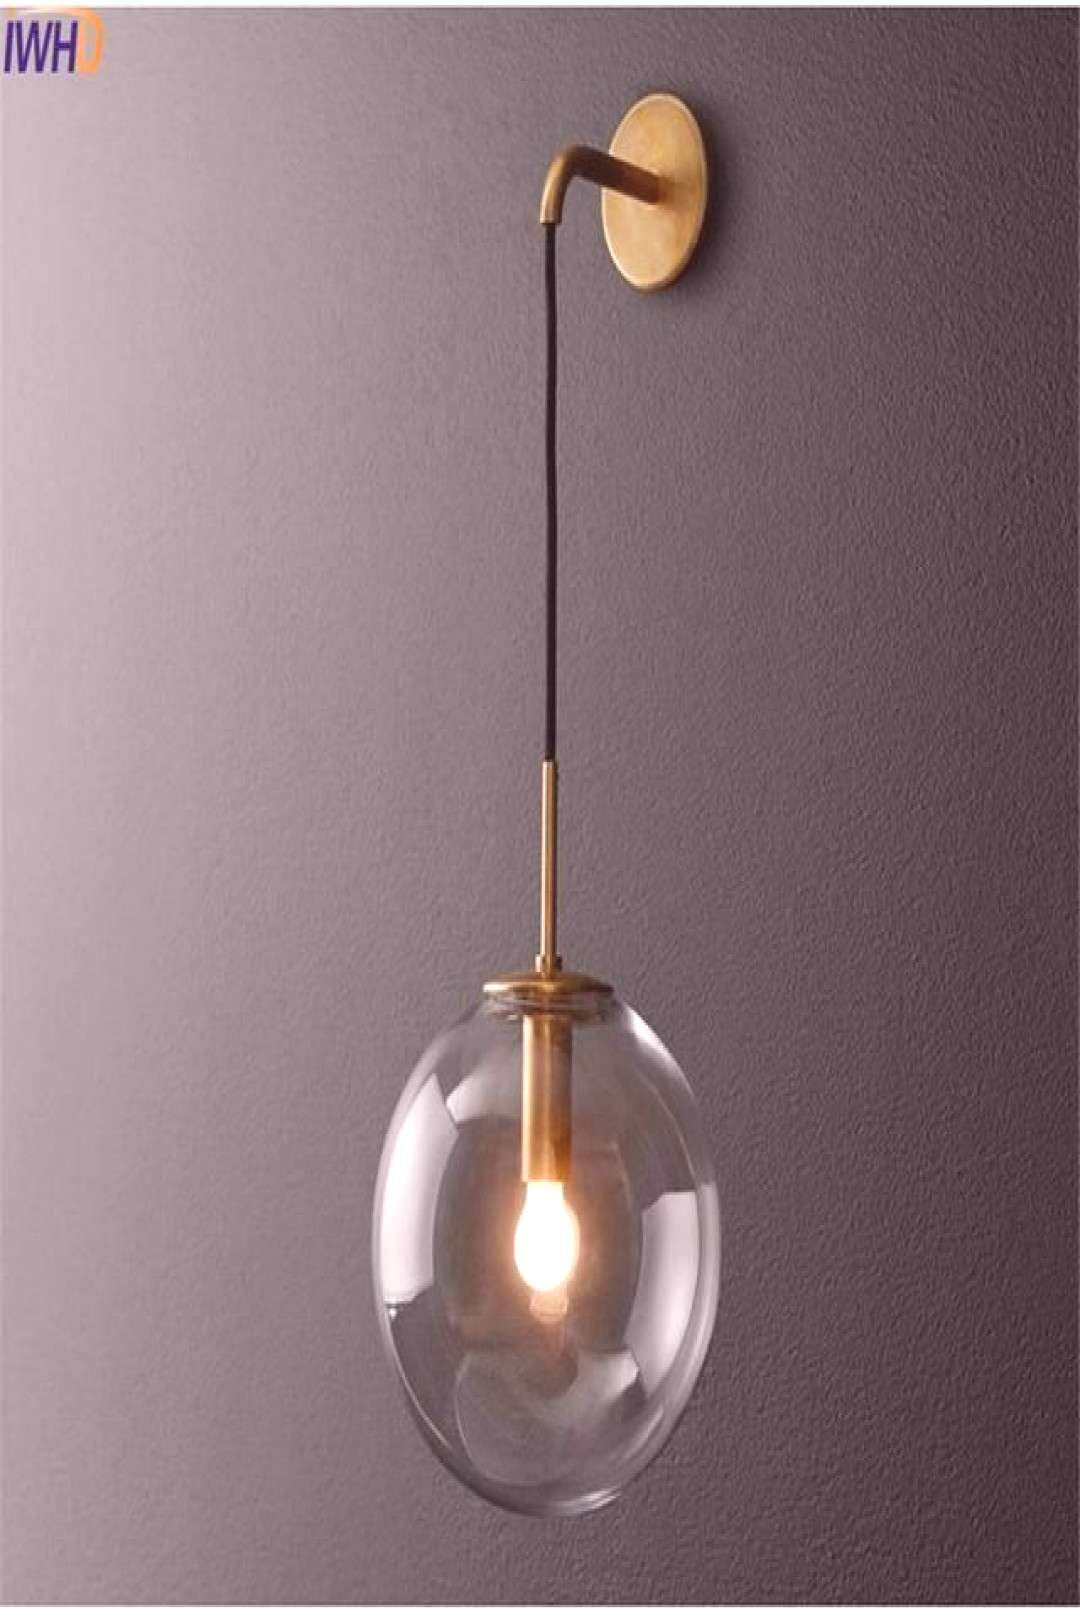 Modern Retro Hanging Globe Black Brass Wall Sconce Sconce Fixture - Home Decorations#black